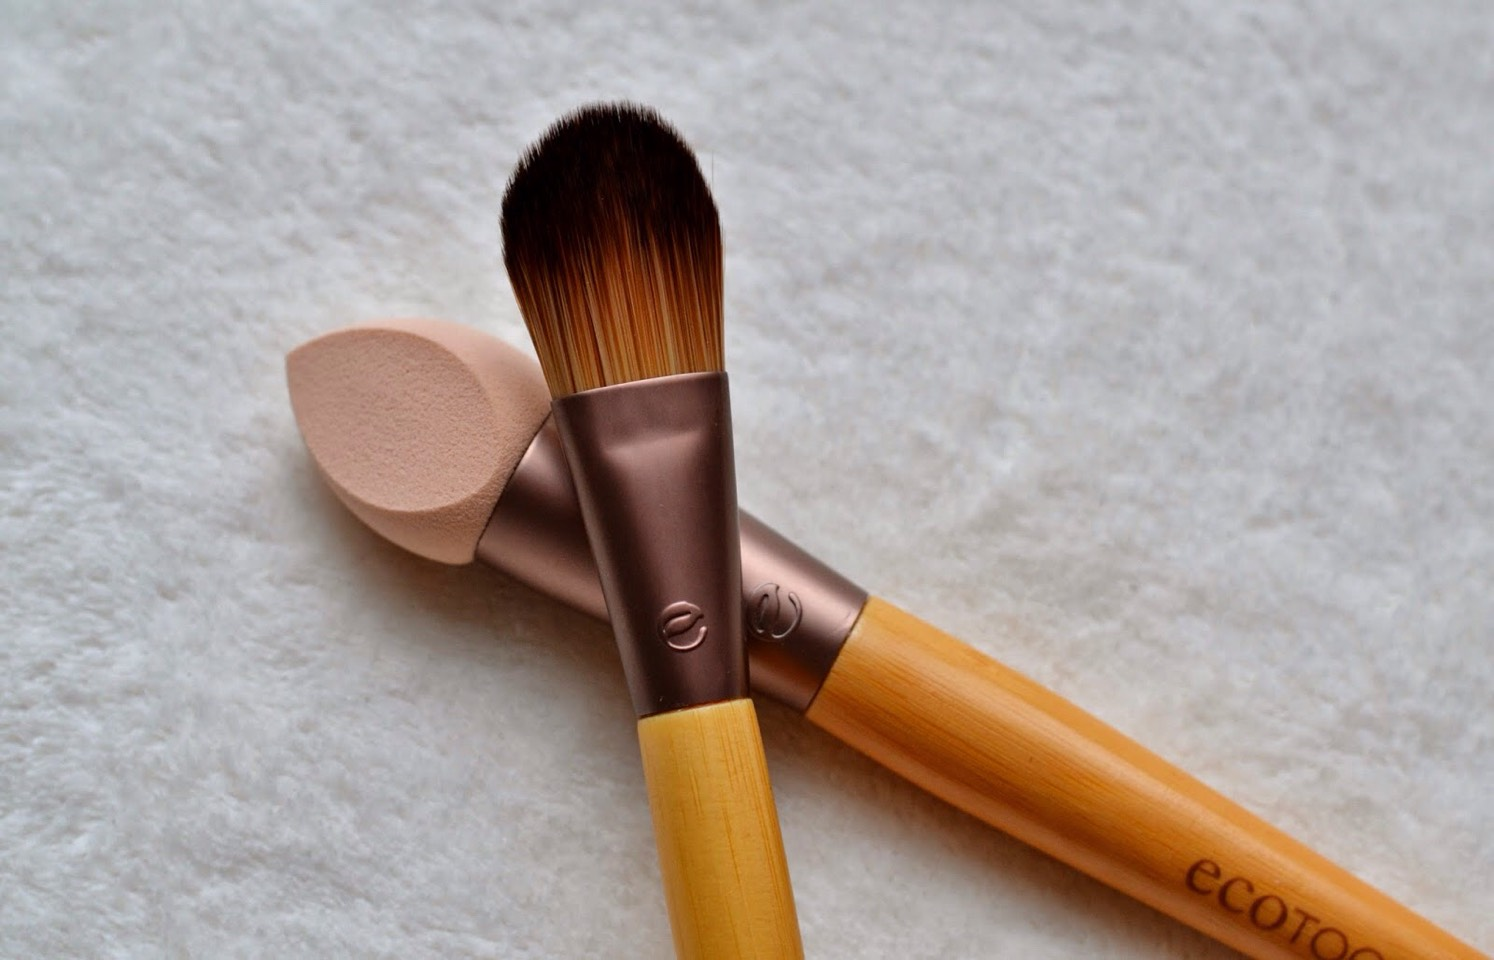 Dab the foundation around the face evenly using either a beauty blender or foundation brush, there are many on the market.